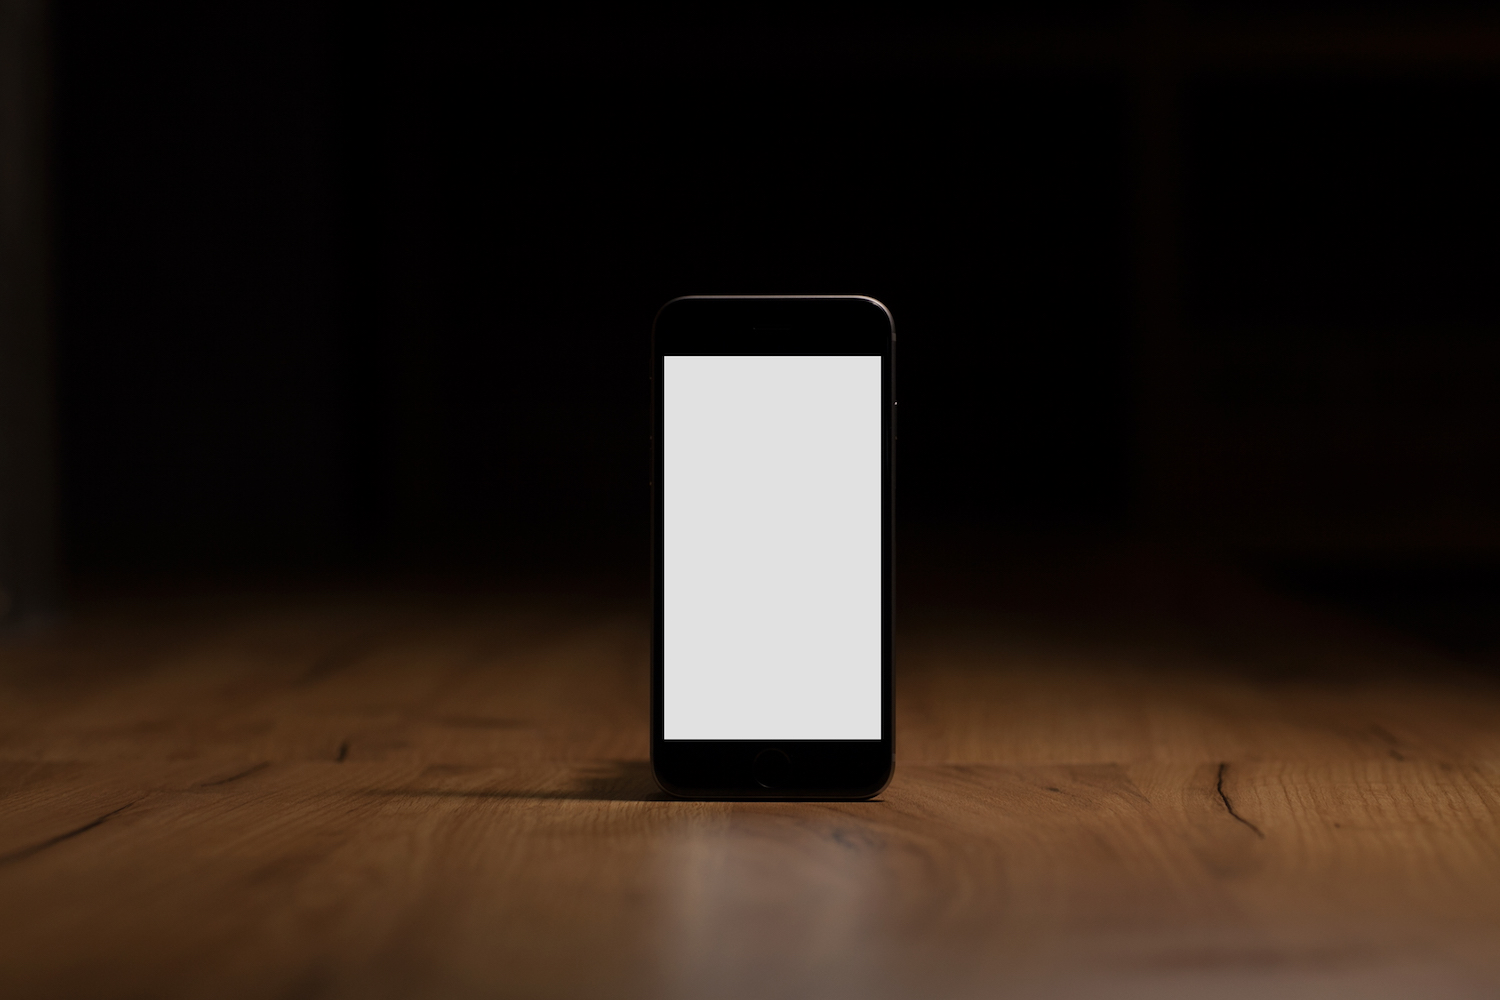 Mobile smart phone with blank screen on the table example image 1